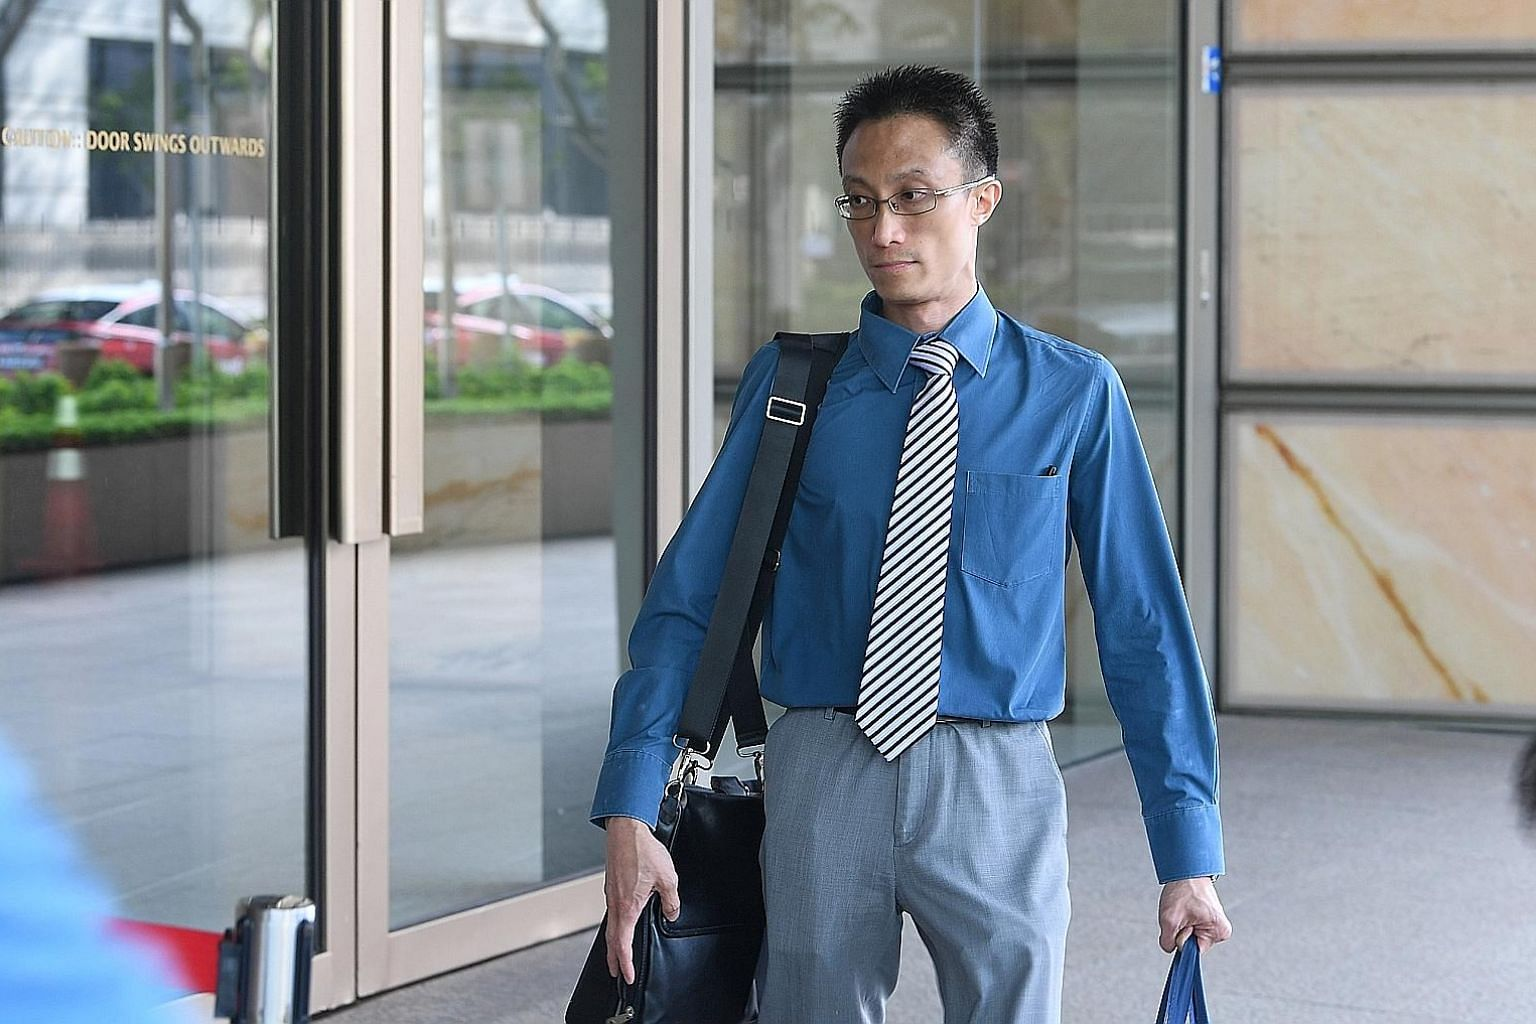 """Ler Teck Siang, who is representing himself in the trial, is accused of providing """"slamming"""" services, which is the street slang for administering illegal substances by injection."""